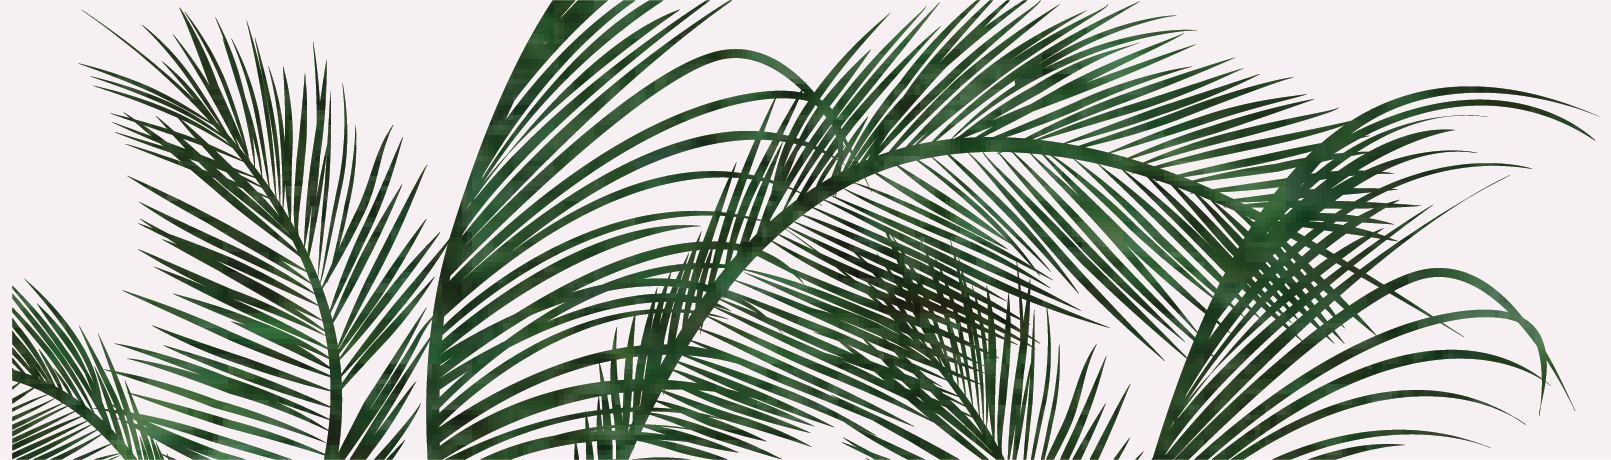 palms-01.png